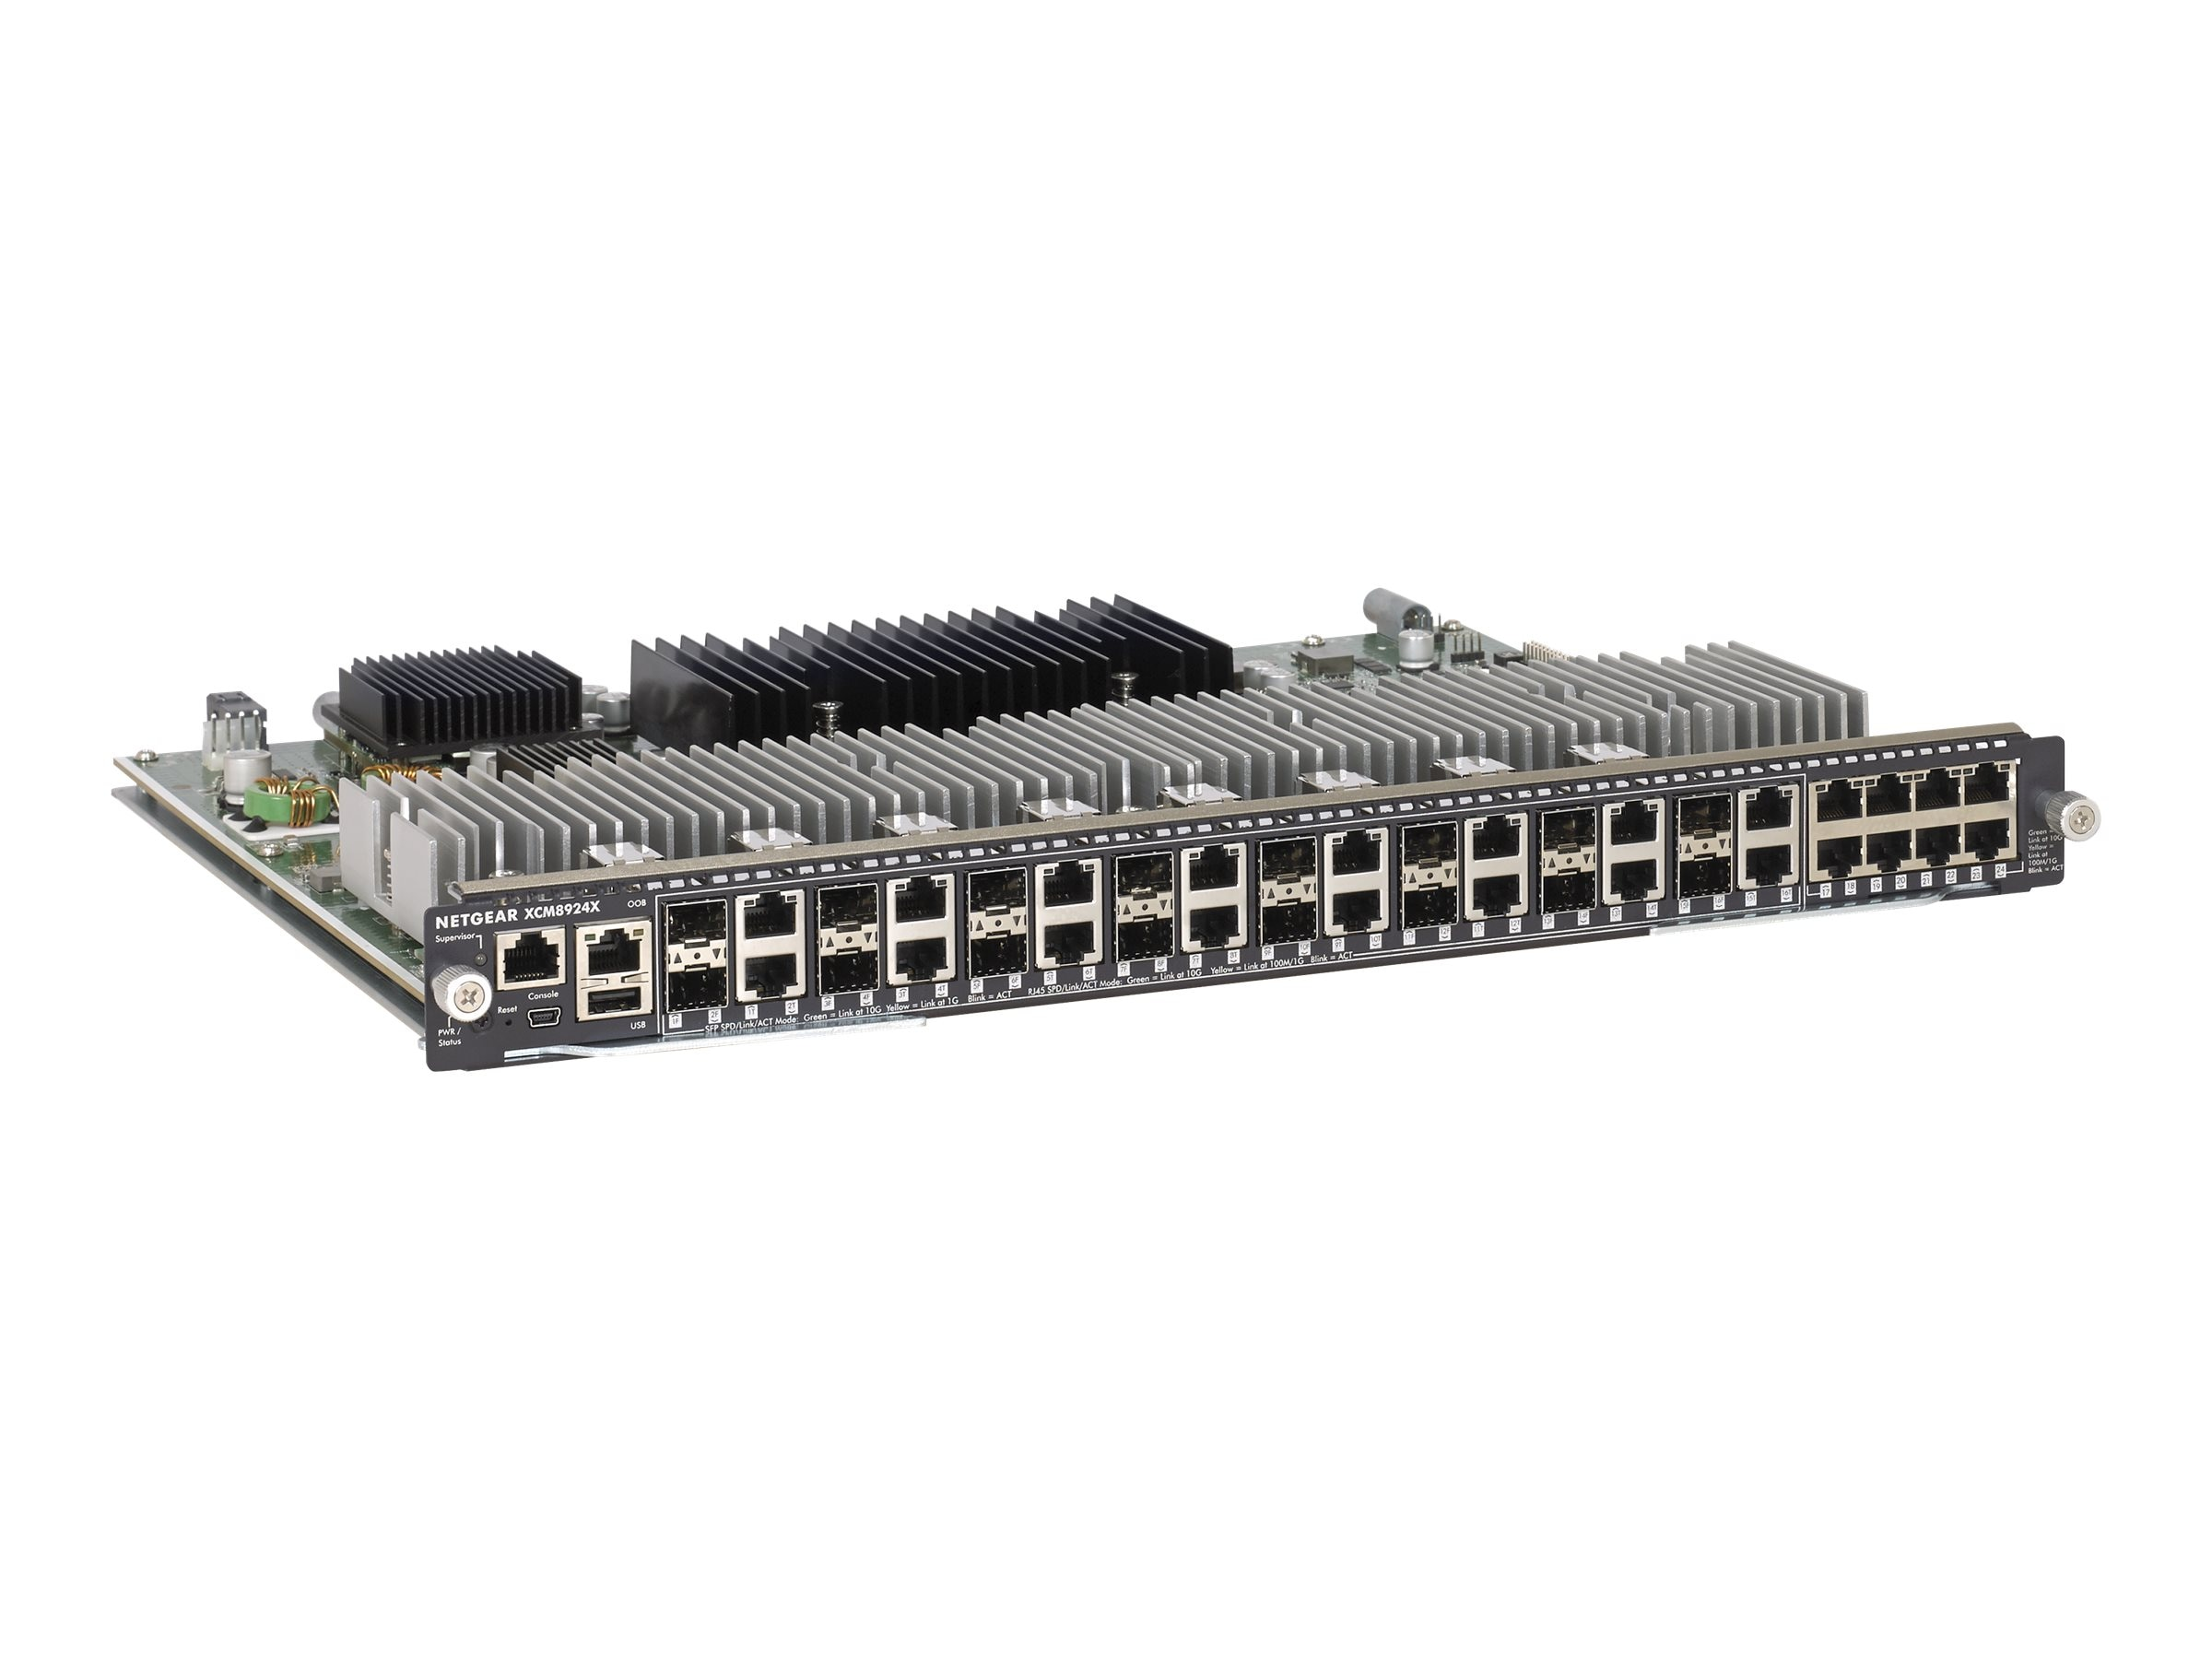 Netgear M6100 Chassis Series 24x10GBASE-T and 16 Shared SFP+ Blade, XCM8924X-10000S